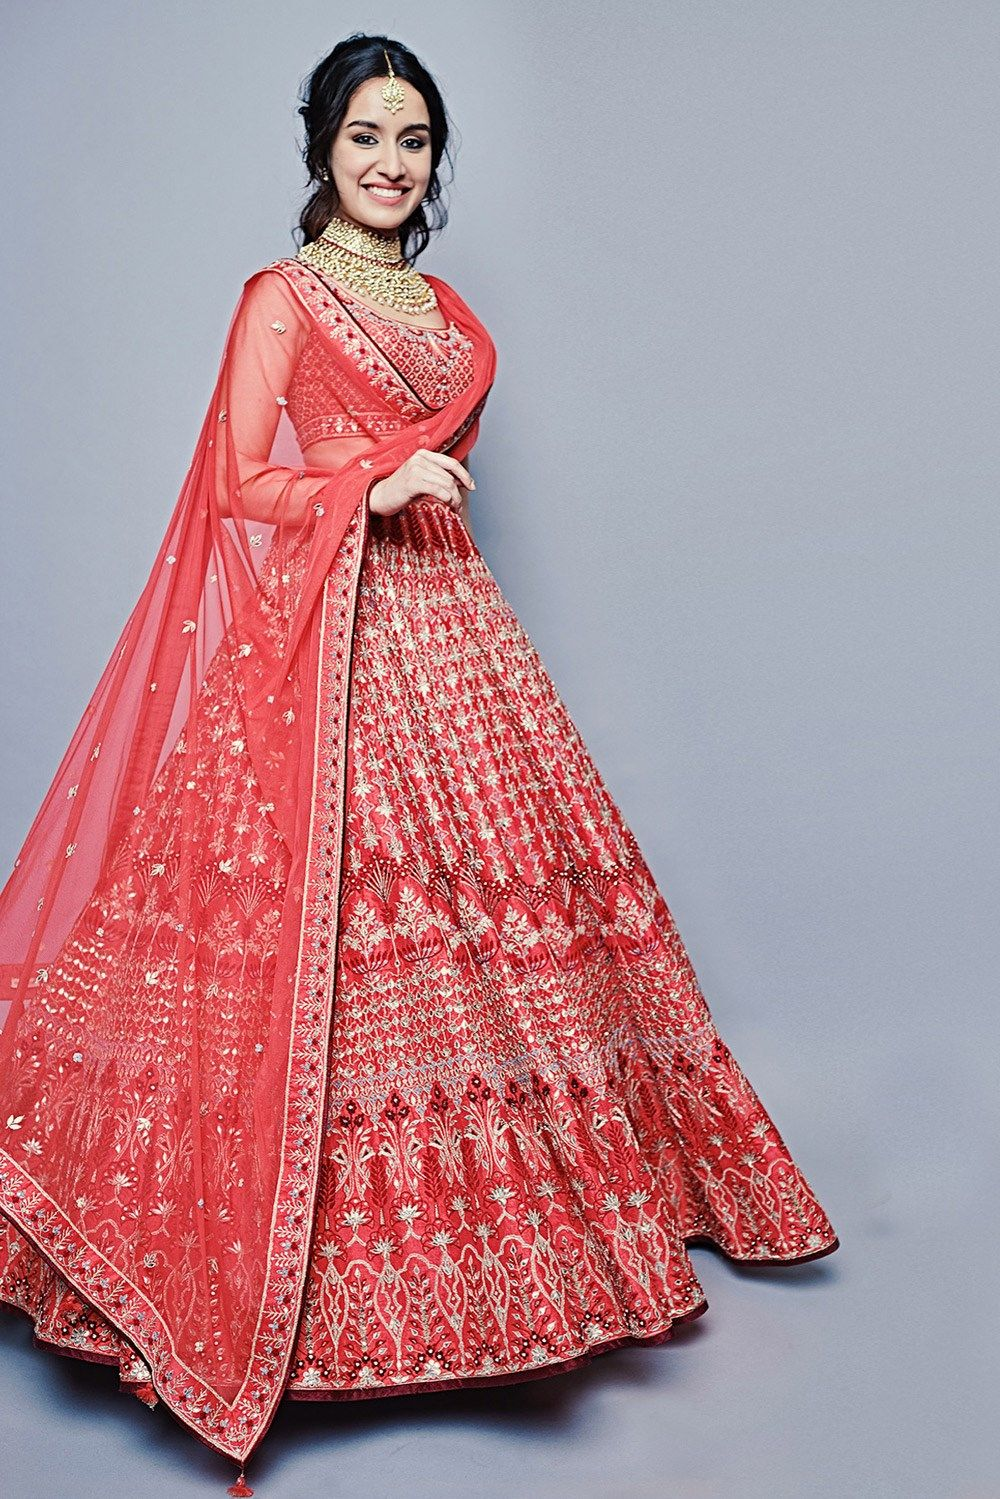 Mirayka Lehenga as seen on Shraddha Kapoor by Anita Dongre